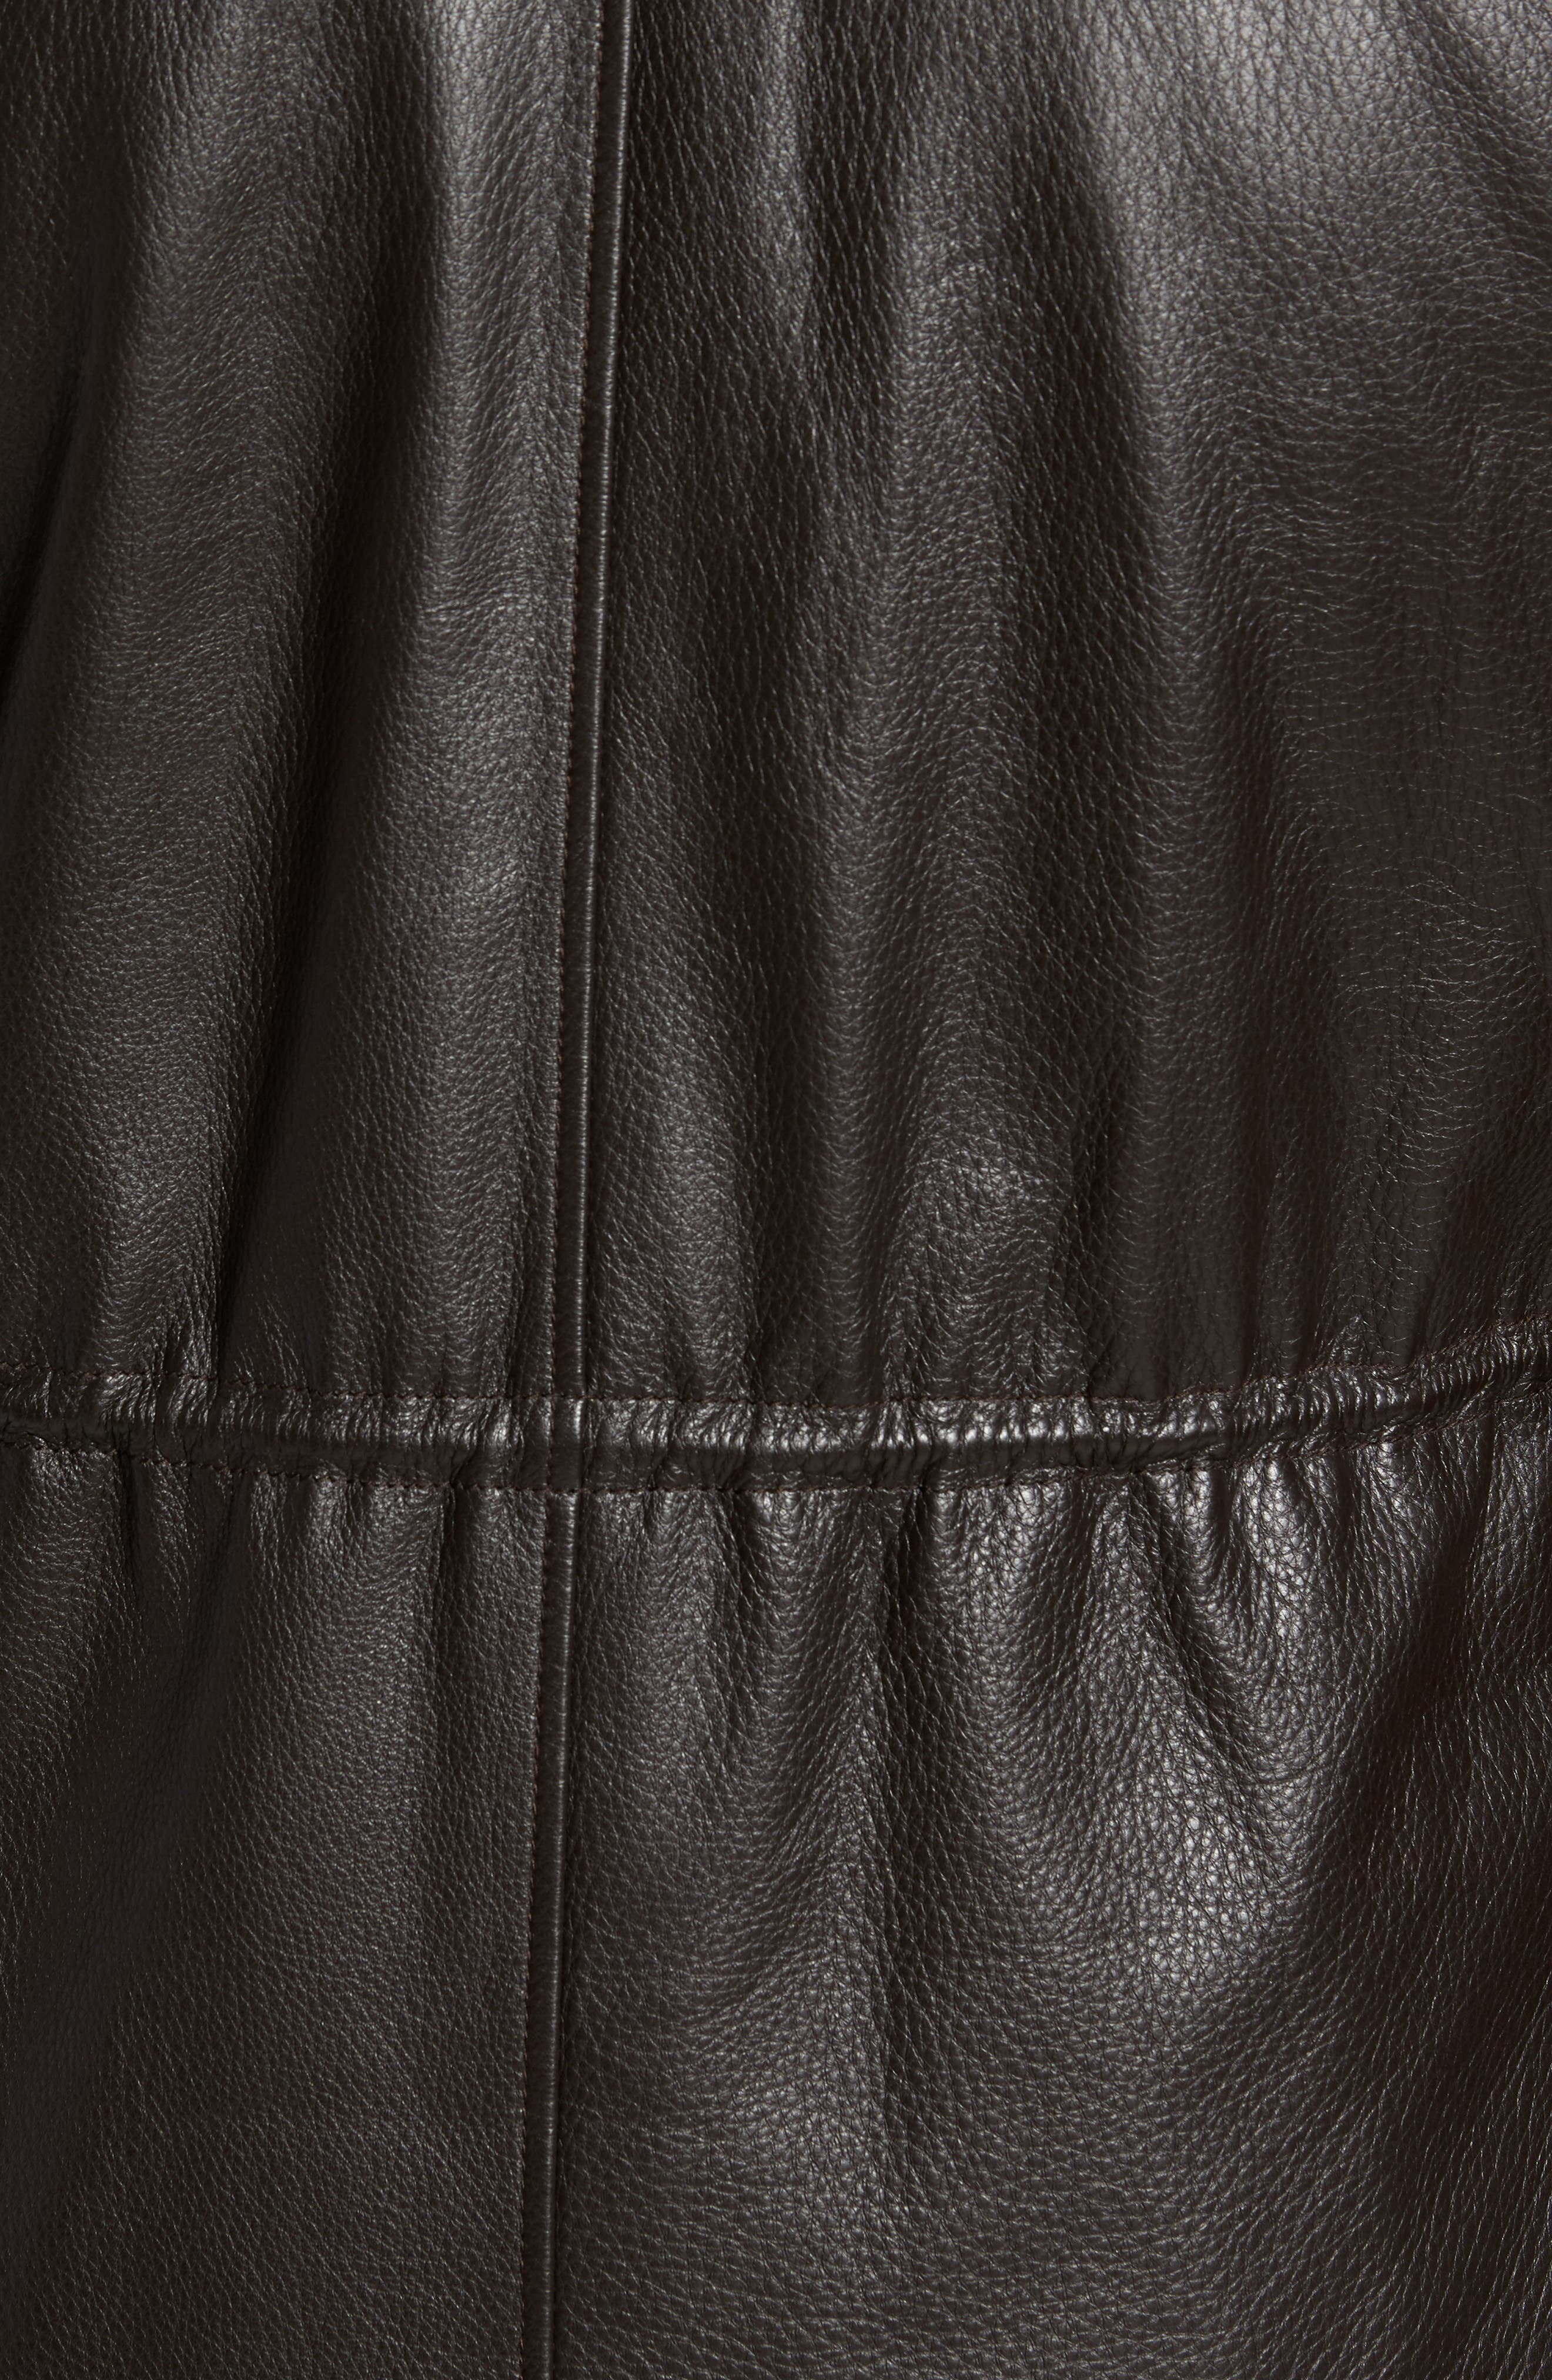 Woodland Discovery Deerskin Leather Jacket,                             Alternate thumbnail 5, color,                             Espresso